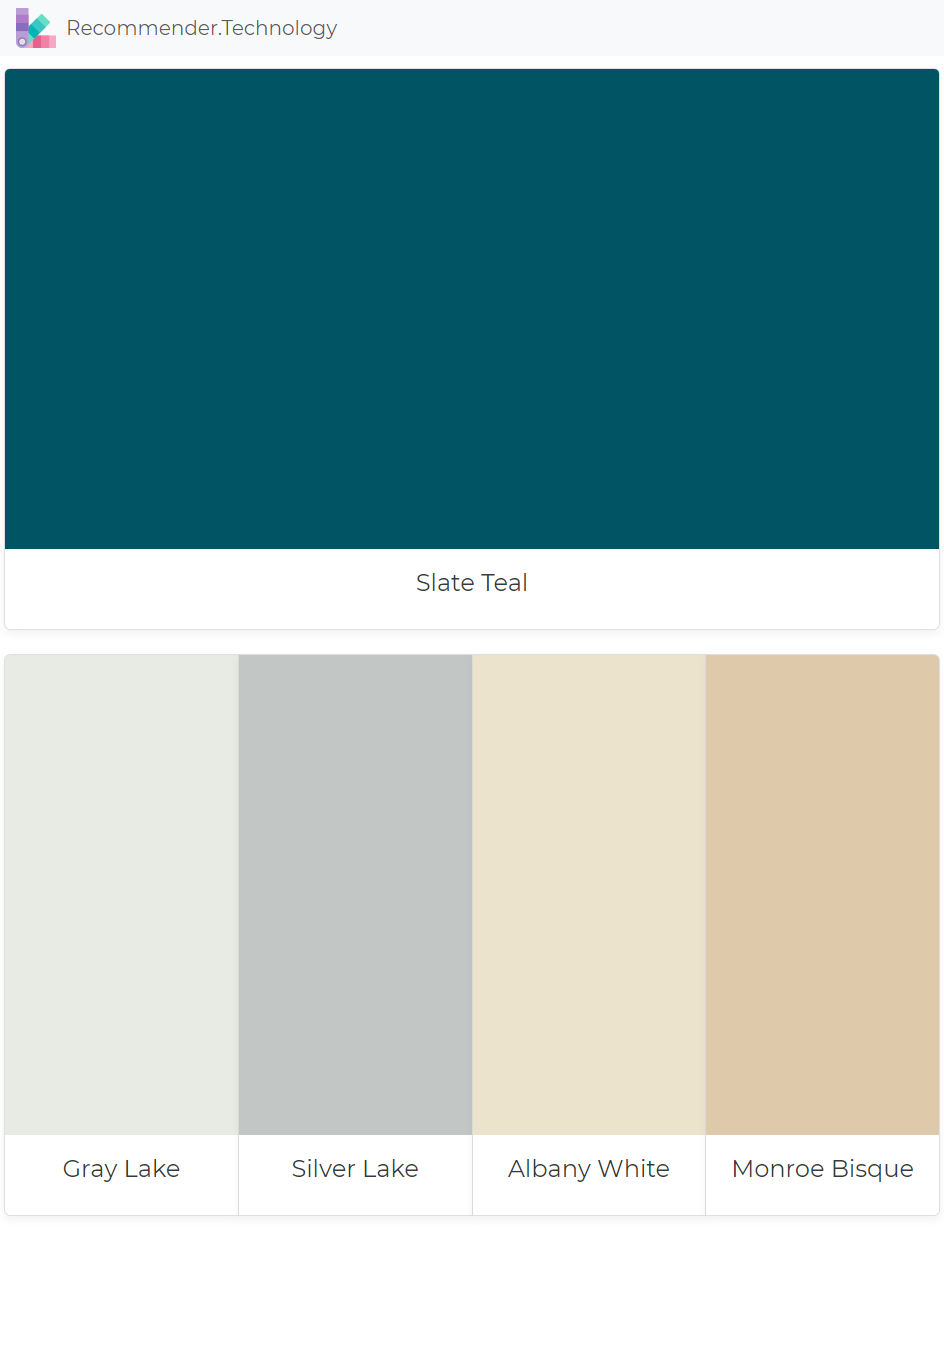 Slate Teal Gray Lake Silver Lake Albany White Monroe Bisque Gray House Exterior Teal Color Palette House Paint Exterior